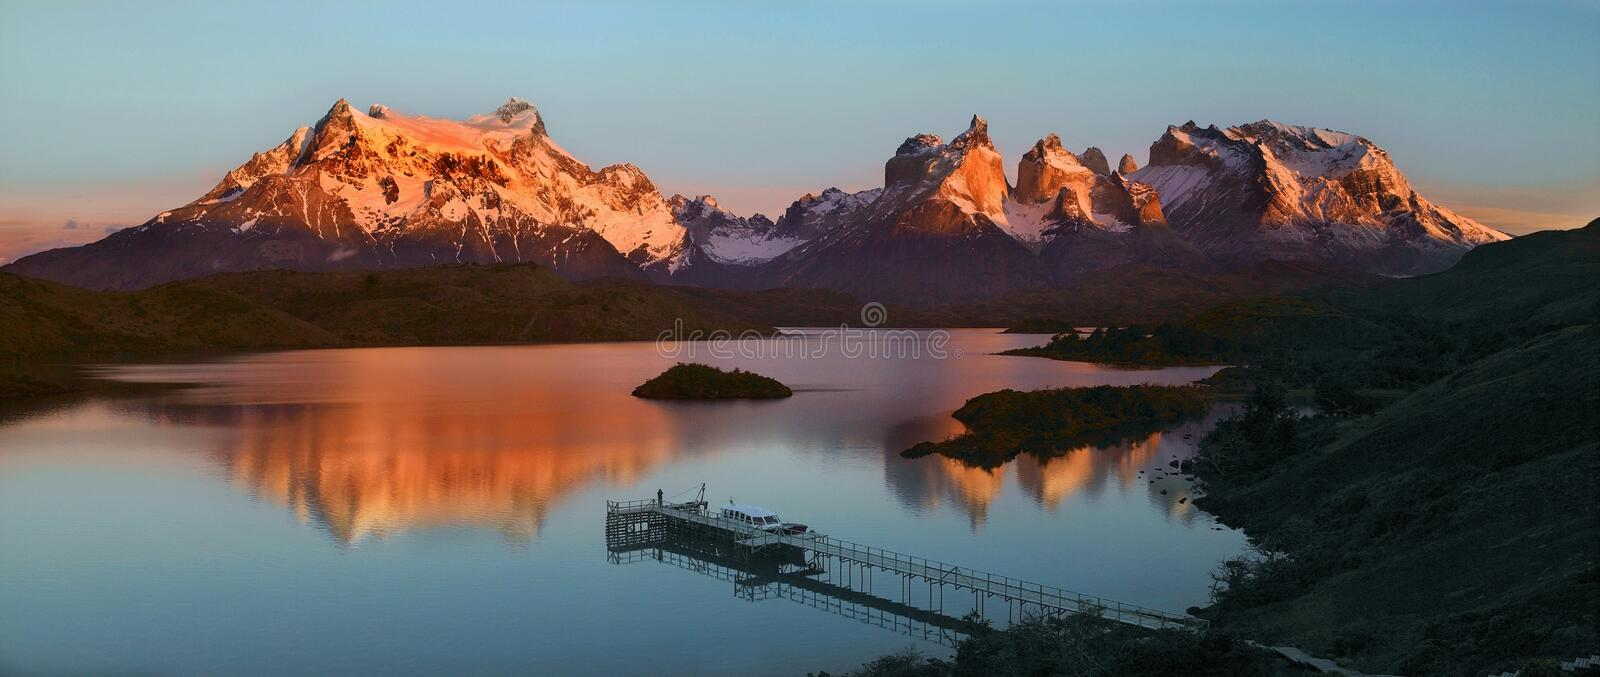 Torres del Paine National Park - Patagonia - Chile royalty free stock image